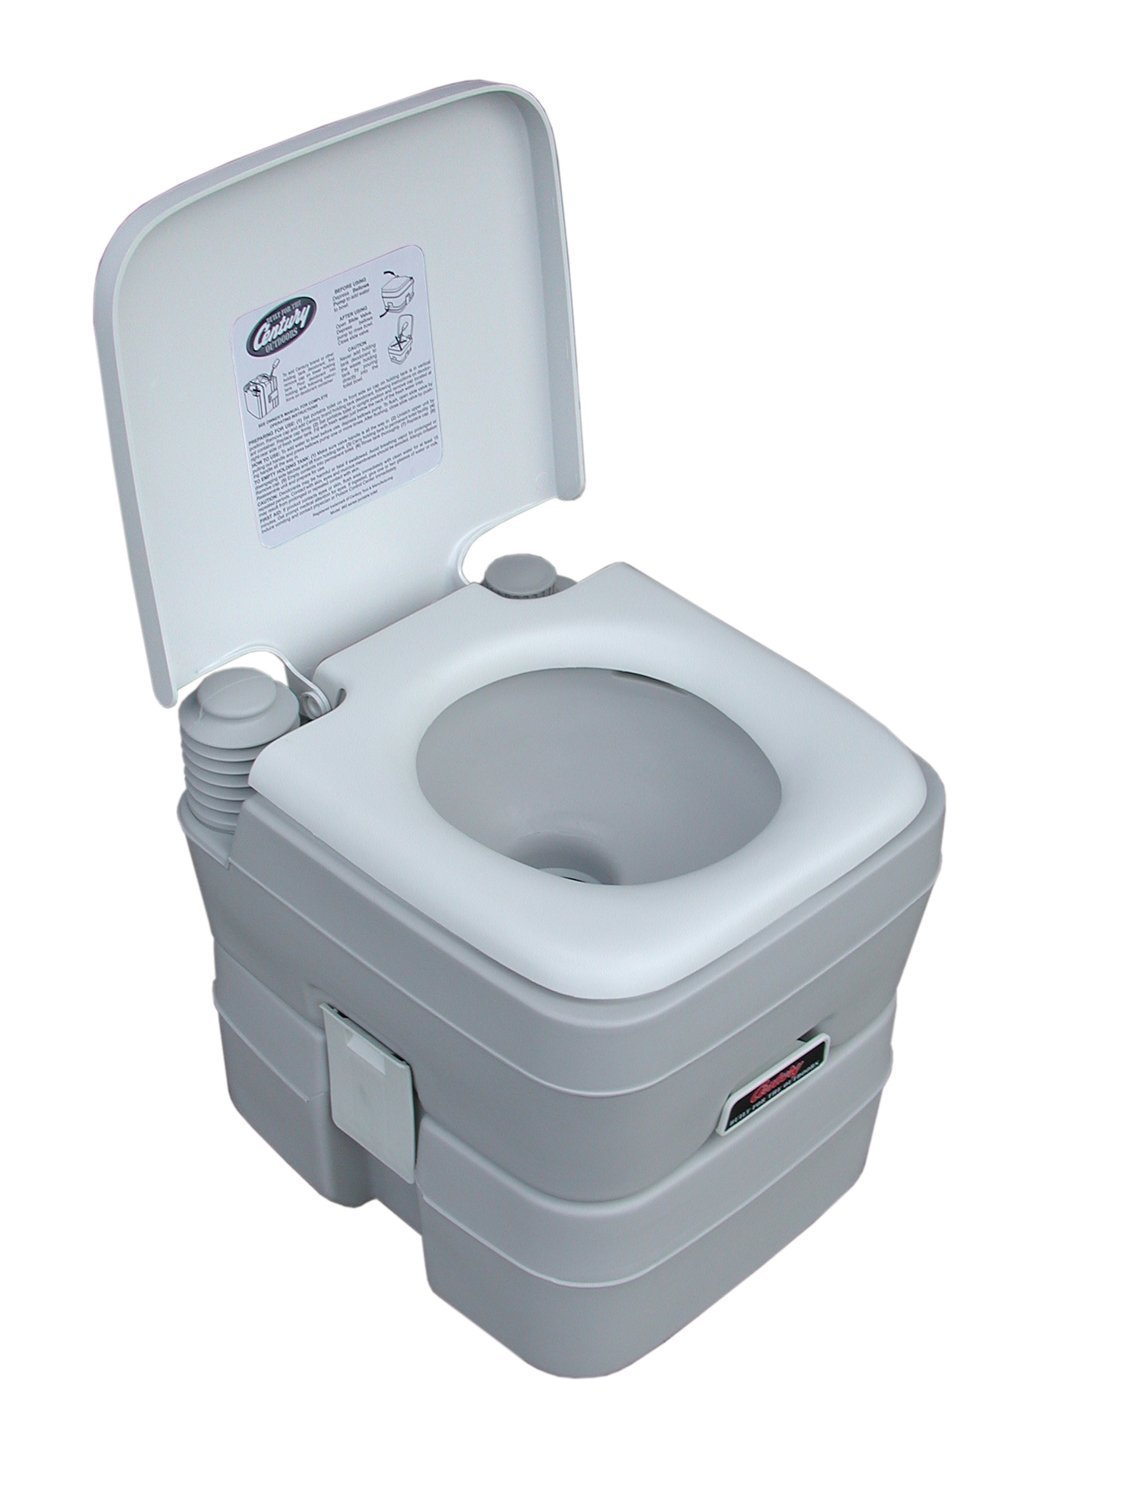 Century Five-Gallon Portable Toilet